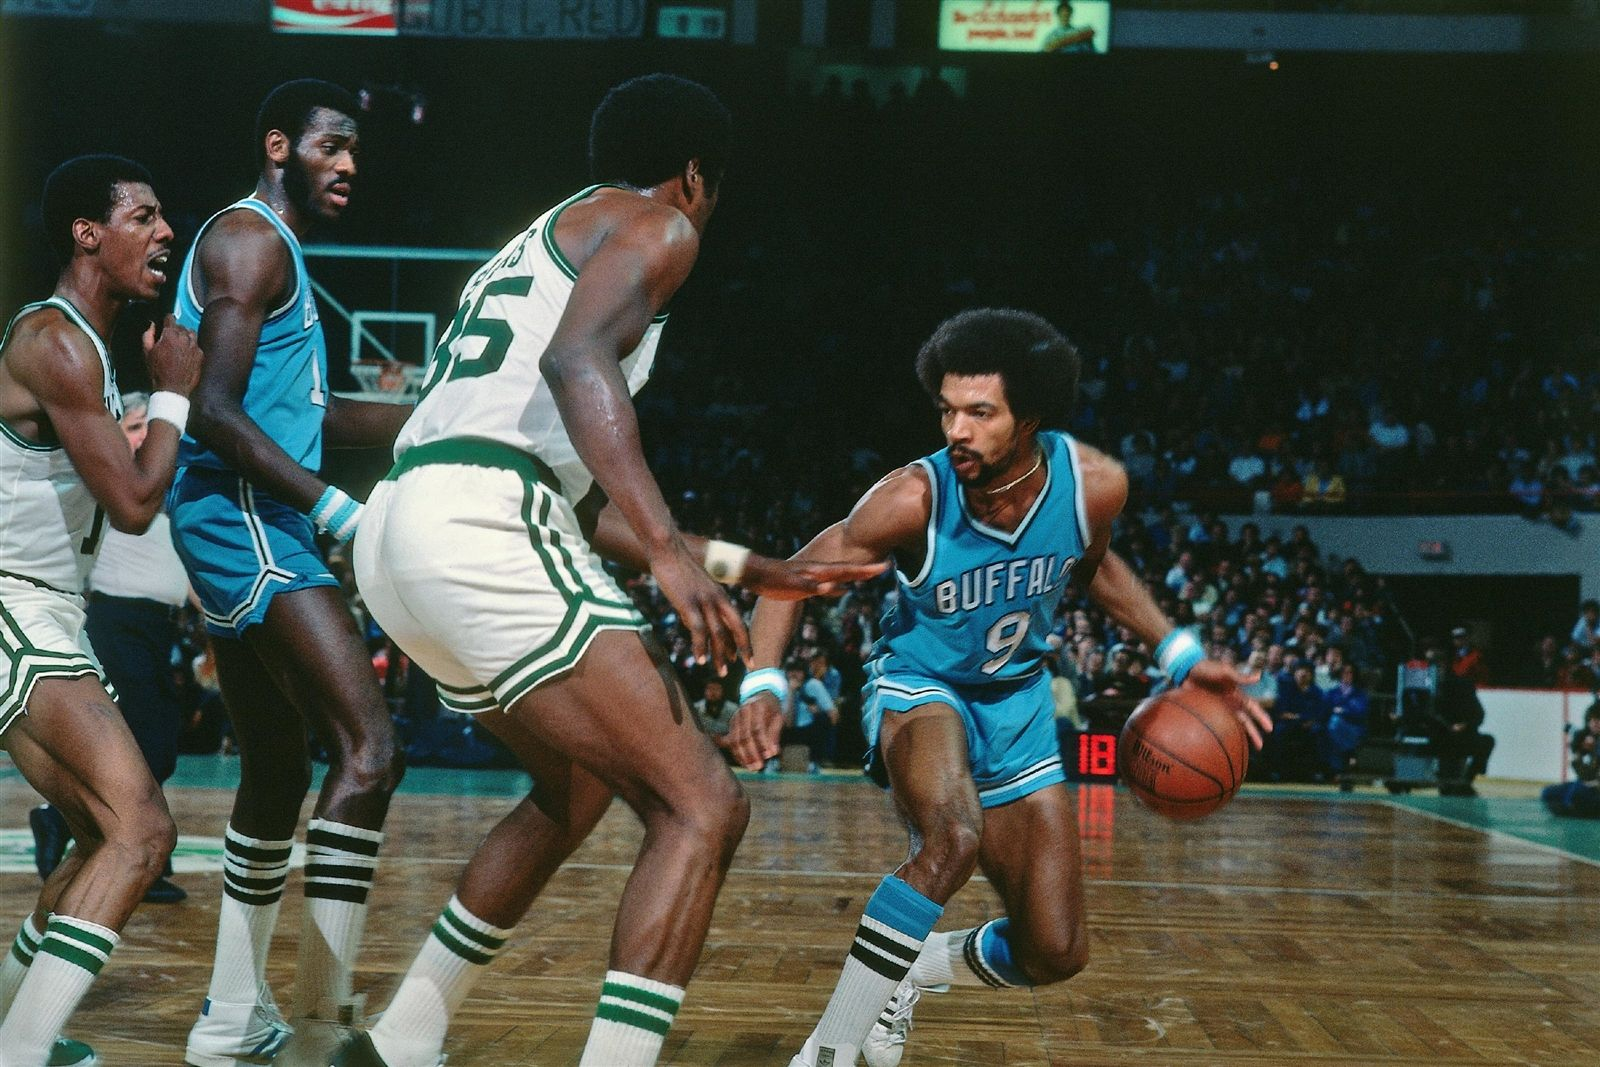 The Buffalo Braves Years With Images Basketball Pictures Braves Basketball Players